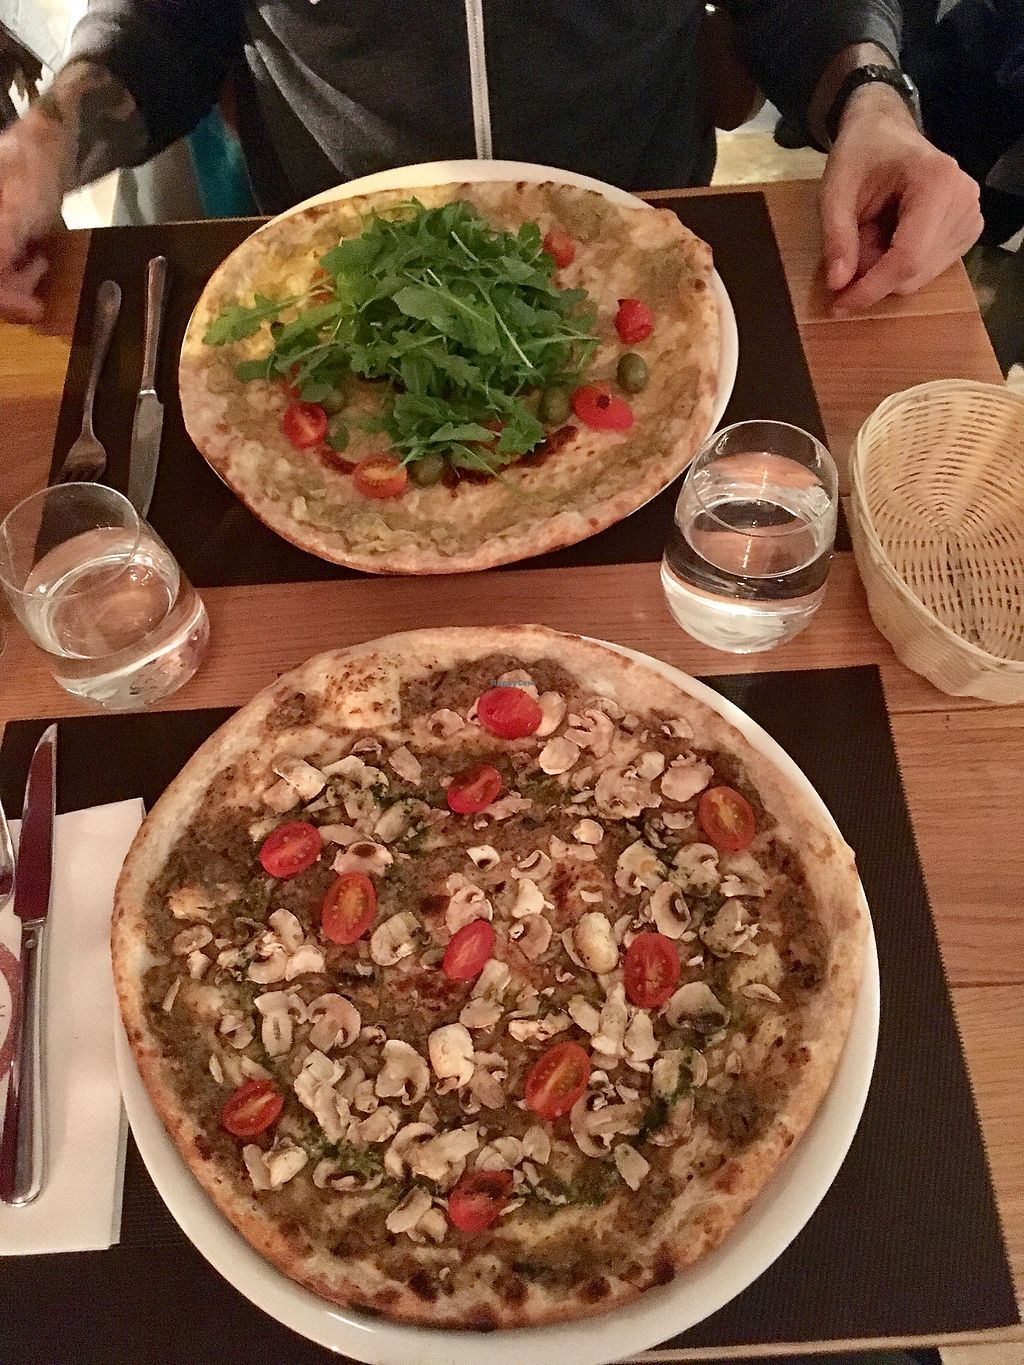 "Photo of Pizza Leggera  by <a href=""/members/profile/Eliane"">Eliane</a> <br/>Pizza vegan sottobosco et pizza vegan verde <br/> October 22, 2017  - <a href='/contact/abuse/image/89748/317563'>Report</a>"